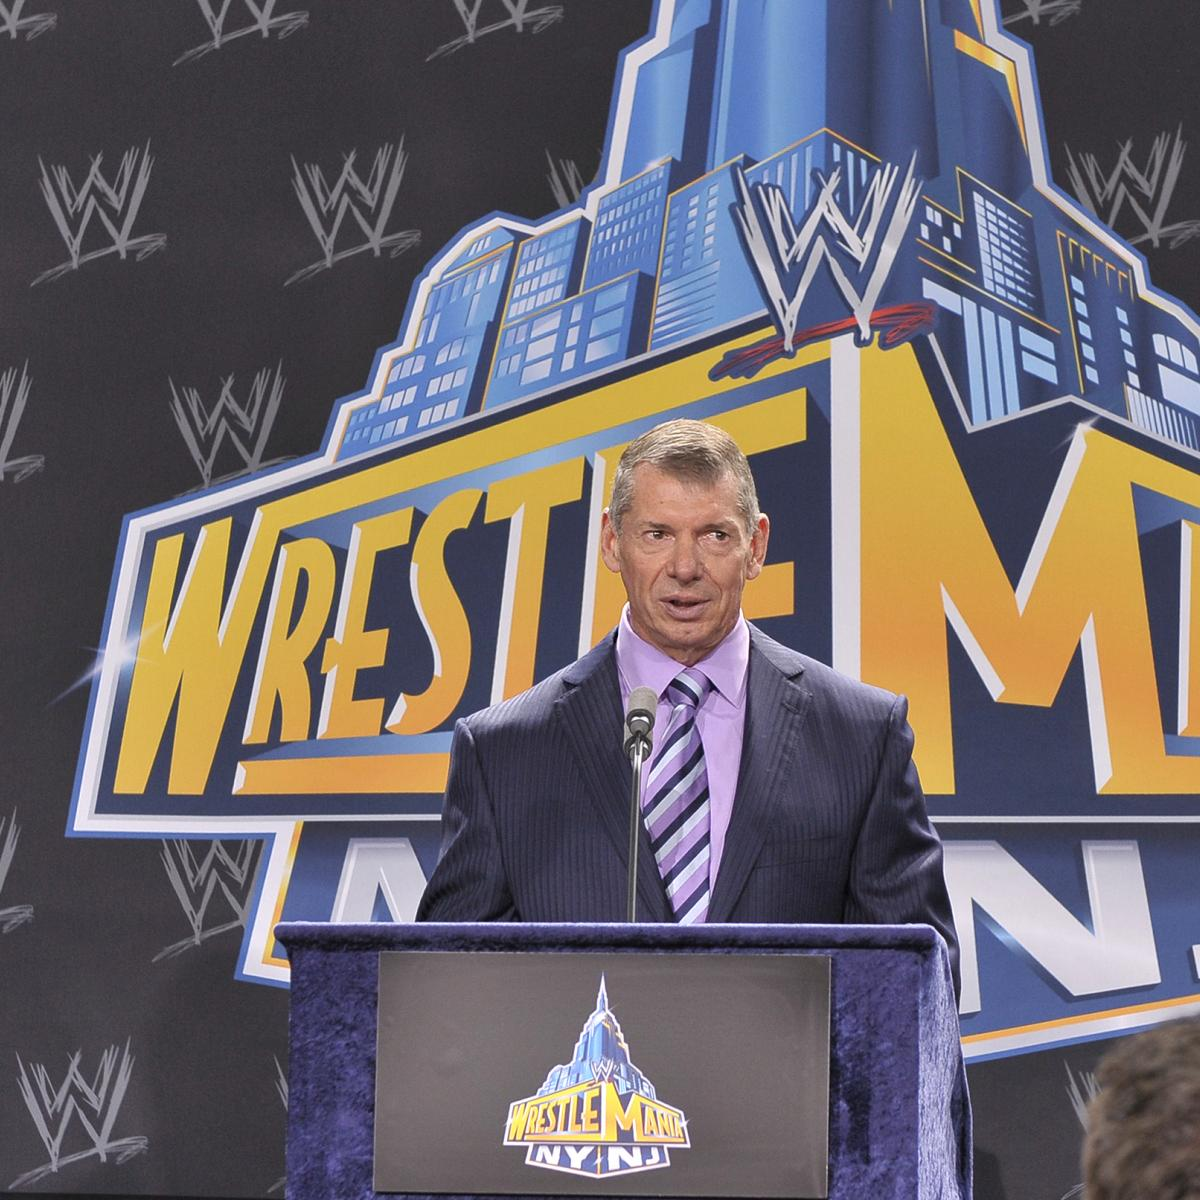 Report: WWE WrestleMania 35 to Be Held at MetLife Stadium in New Jersey